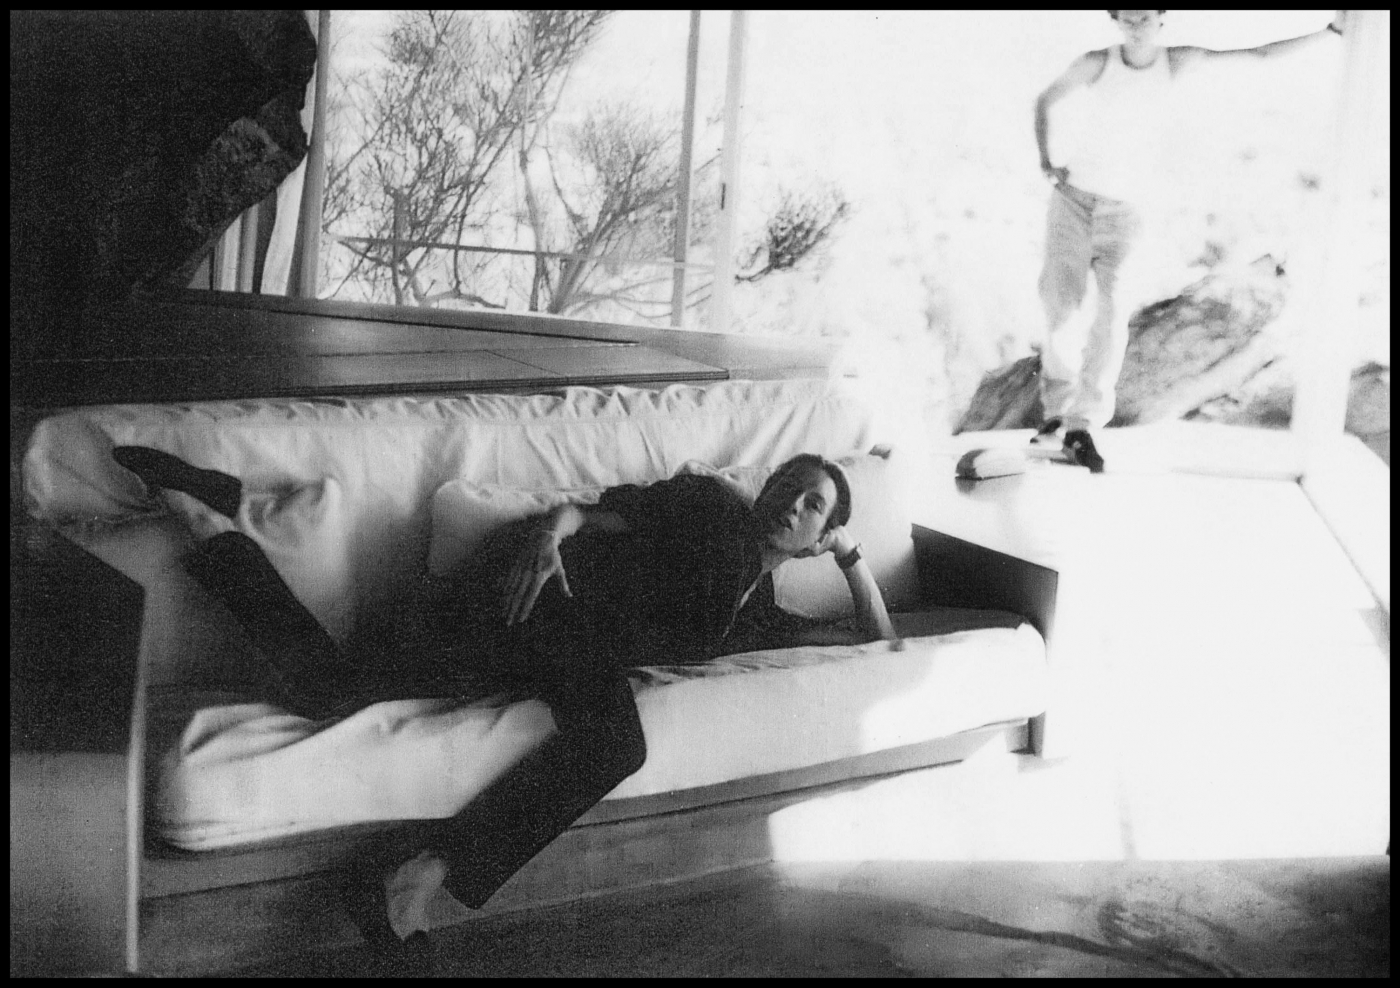 """This was in Palm Springs at the house of the architect Albert Frey. I was shooting there for an April 2000 Vogue story about minimalism, and I was 'interpretive modeling' for Arthur again. The guy behind us must be one of his assistants."""